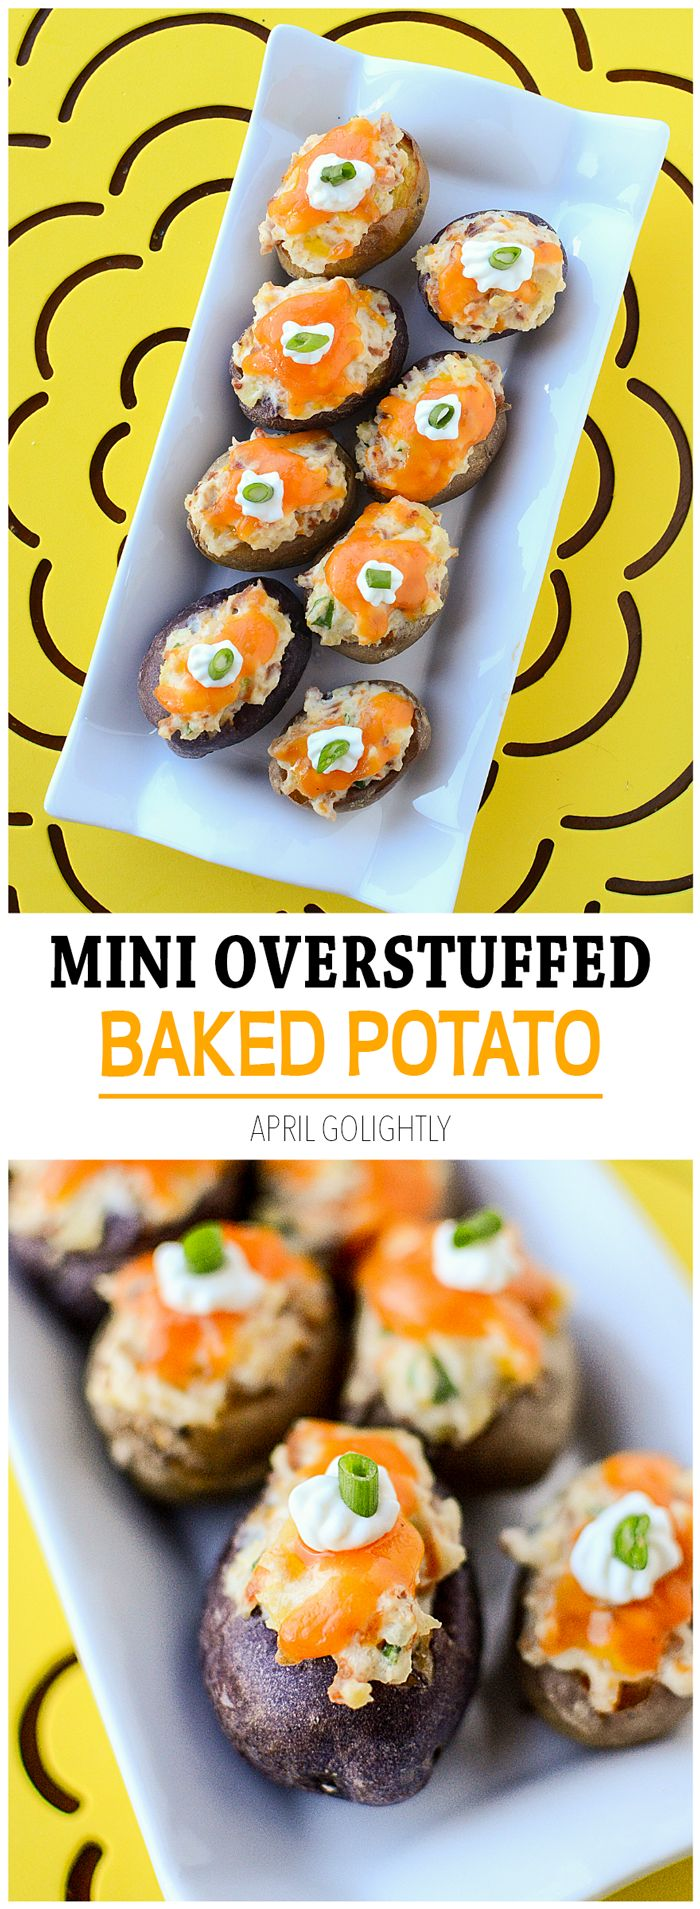 Mini Overstuffed Baked Potato Recipe made with twice baked potatoes ...